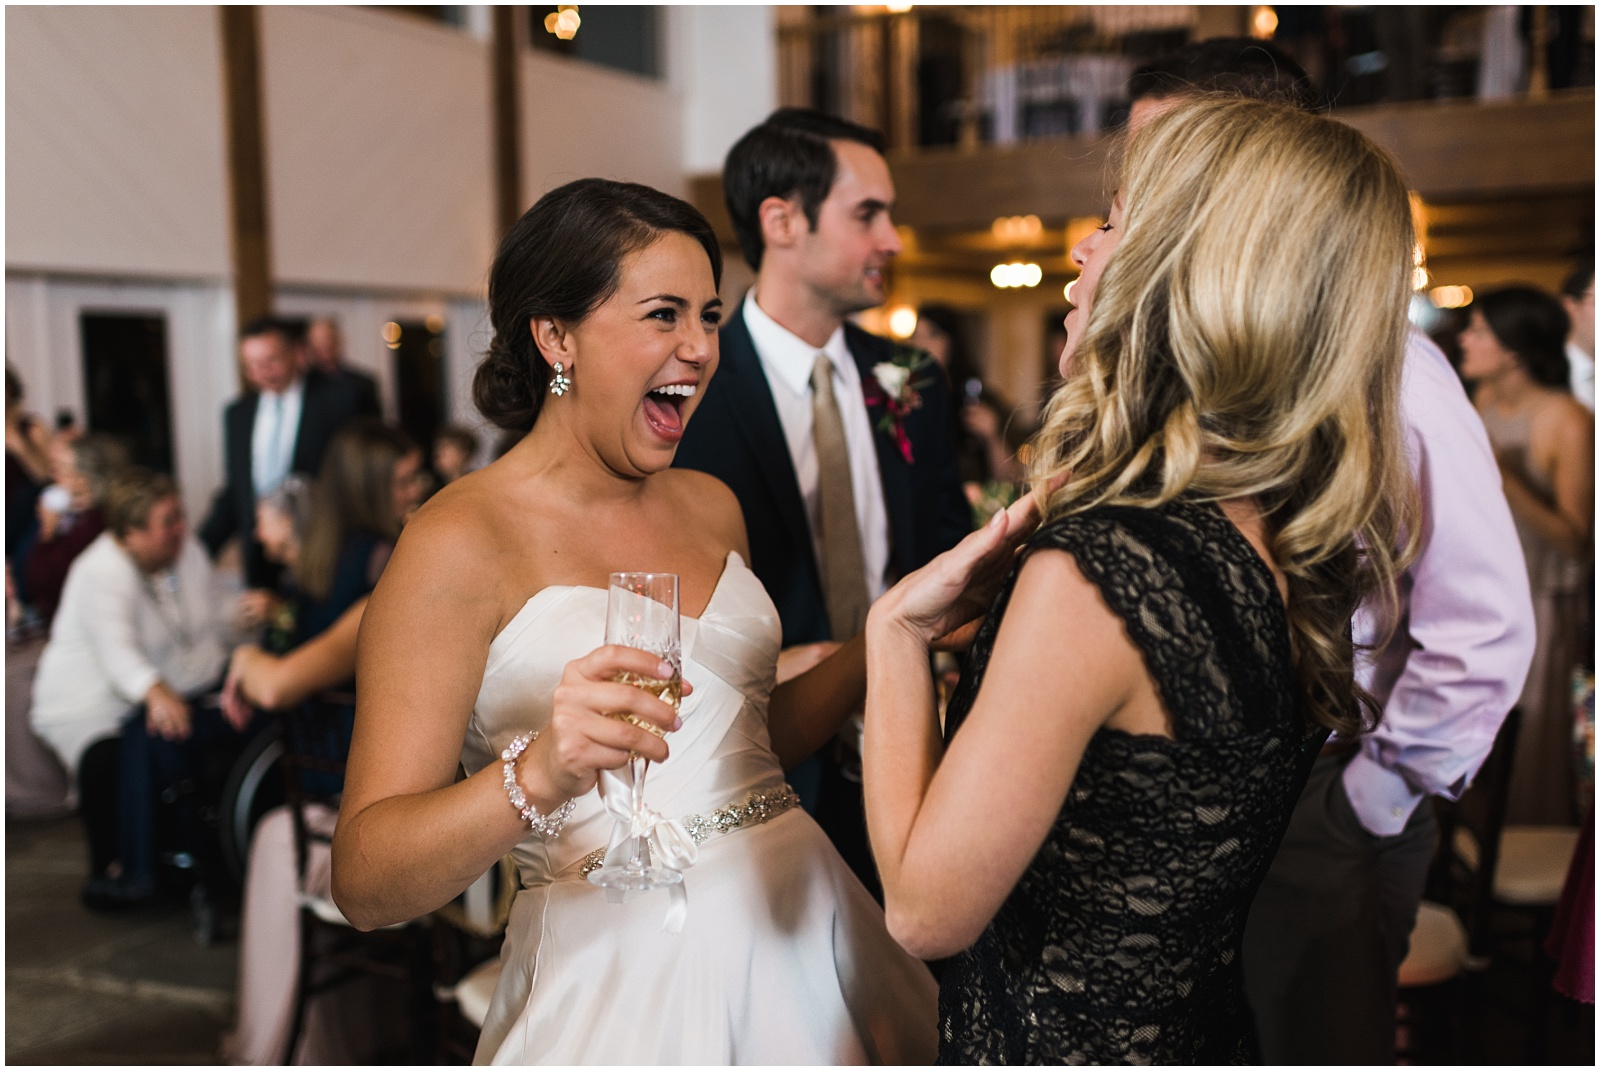 Candid with bride and friend